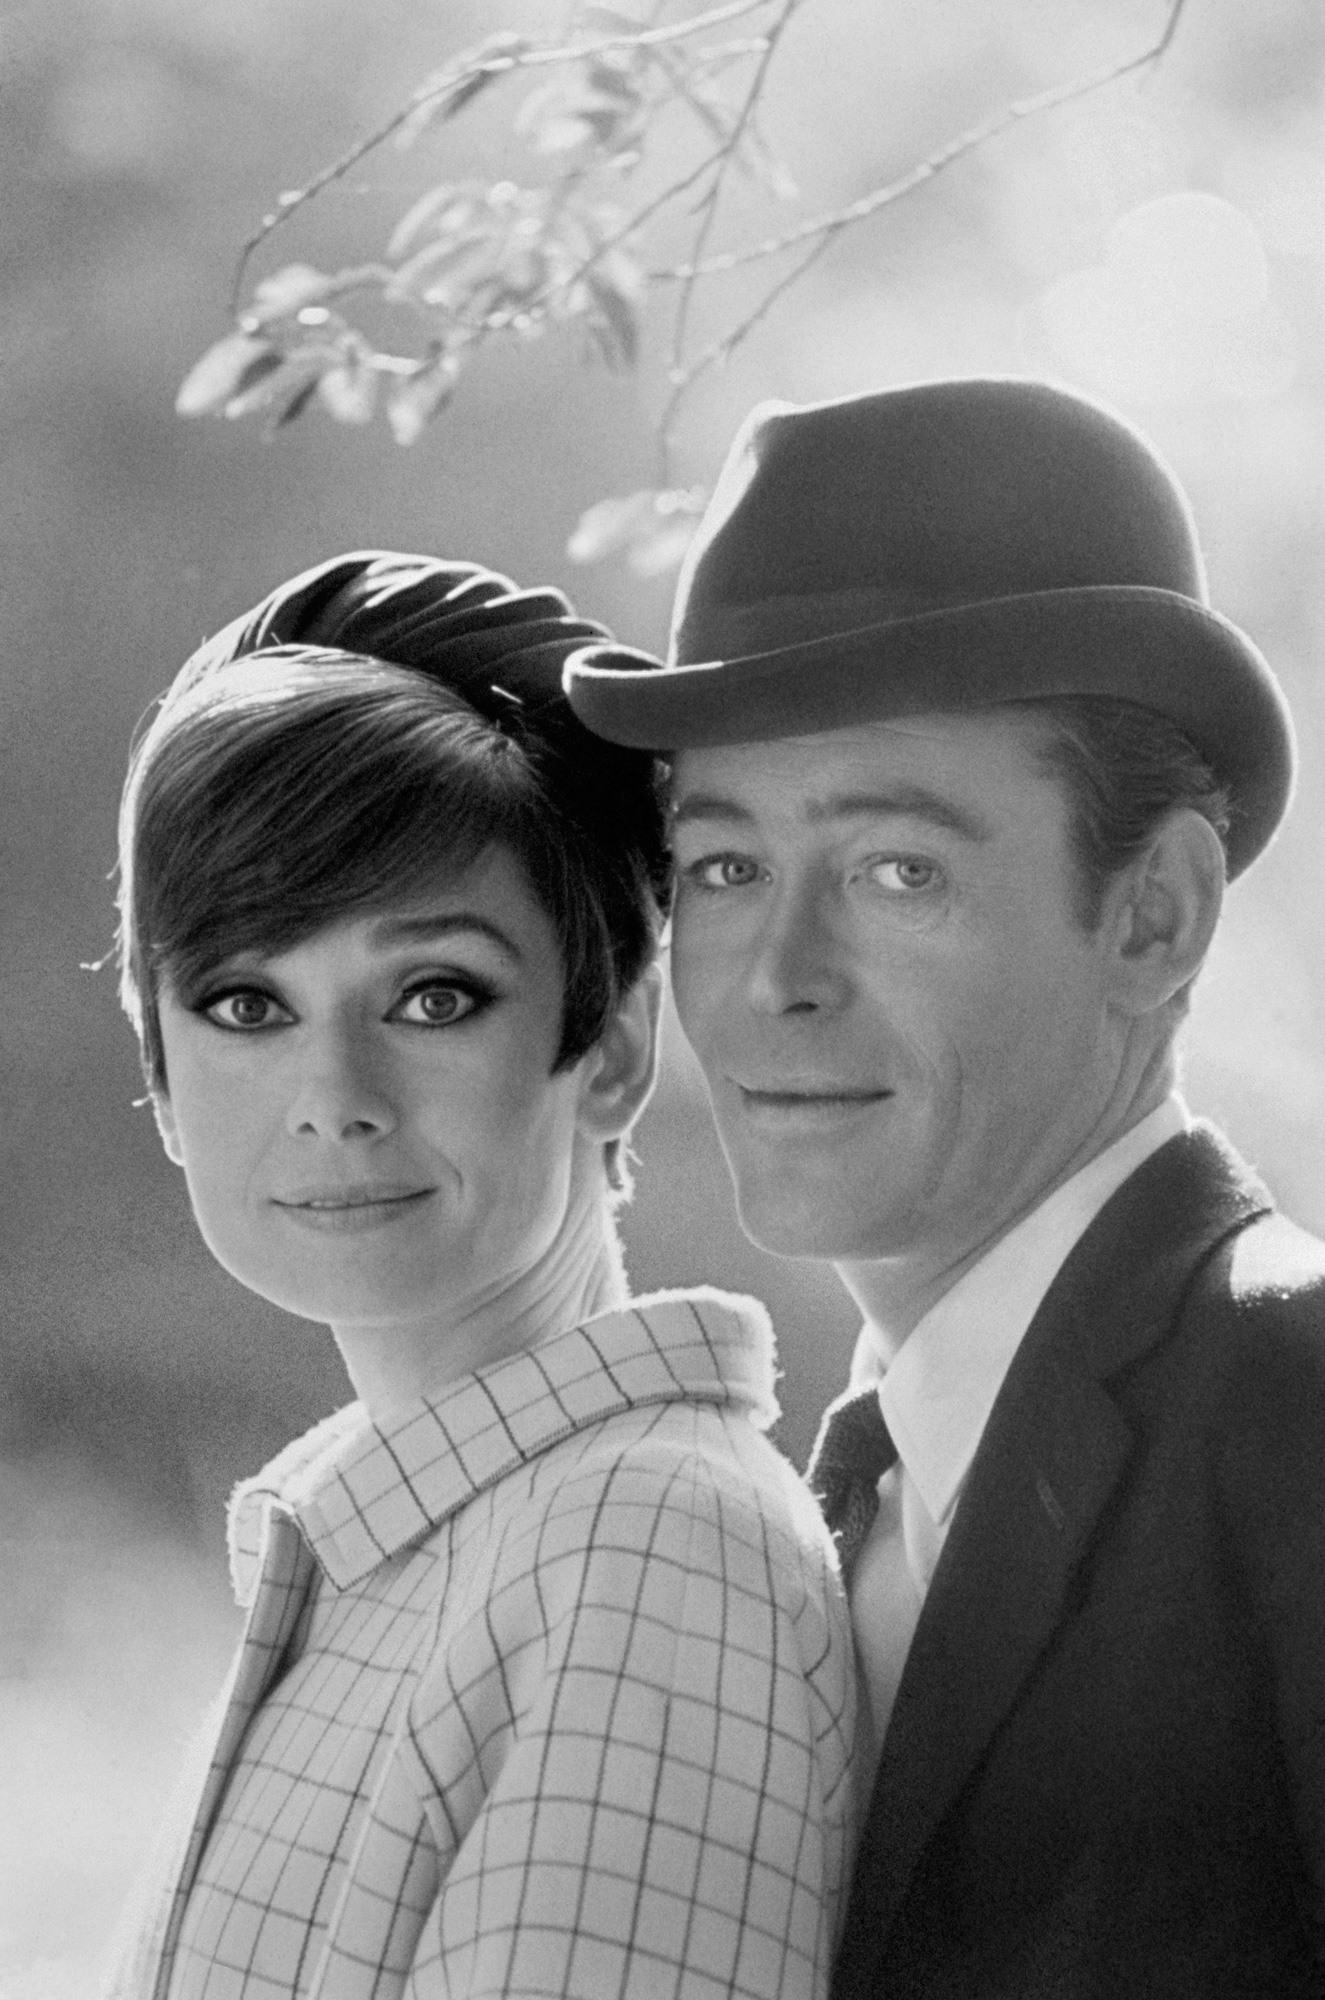 Peter O'Toole and Audrey Hepburn by Terry O'Neil